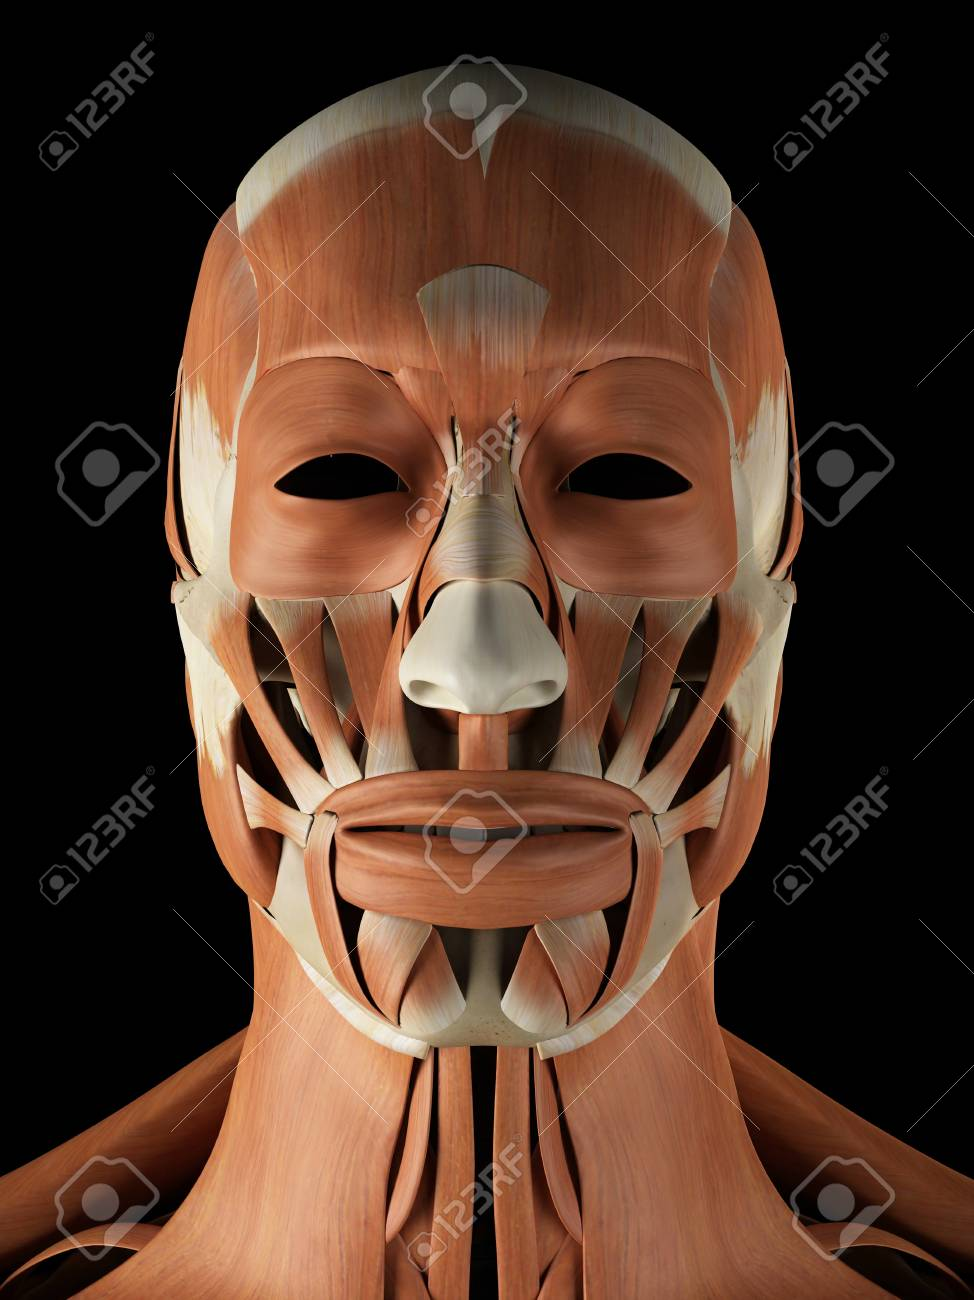 Human Facial Muscles Artwork Stock Photo Picture And Royalty Free